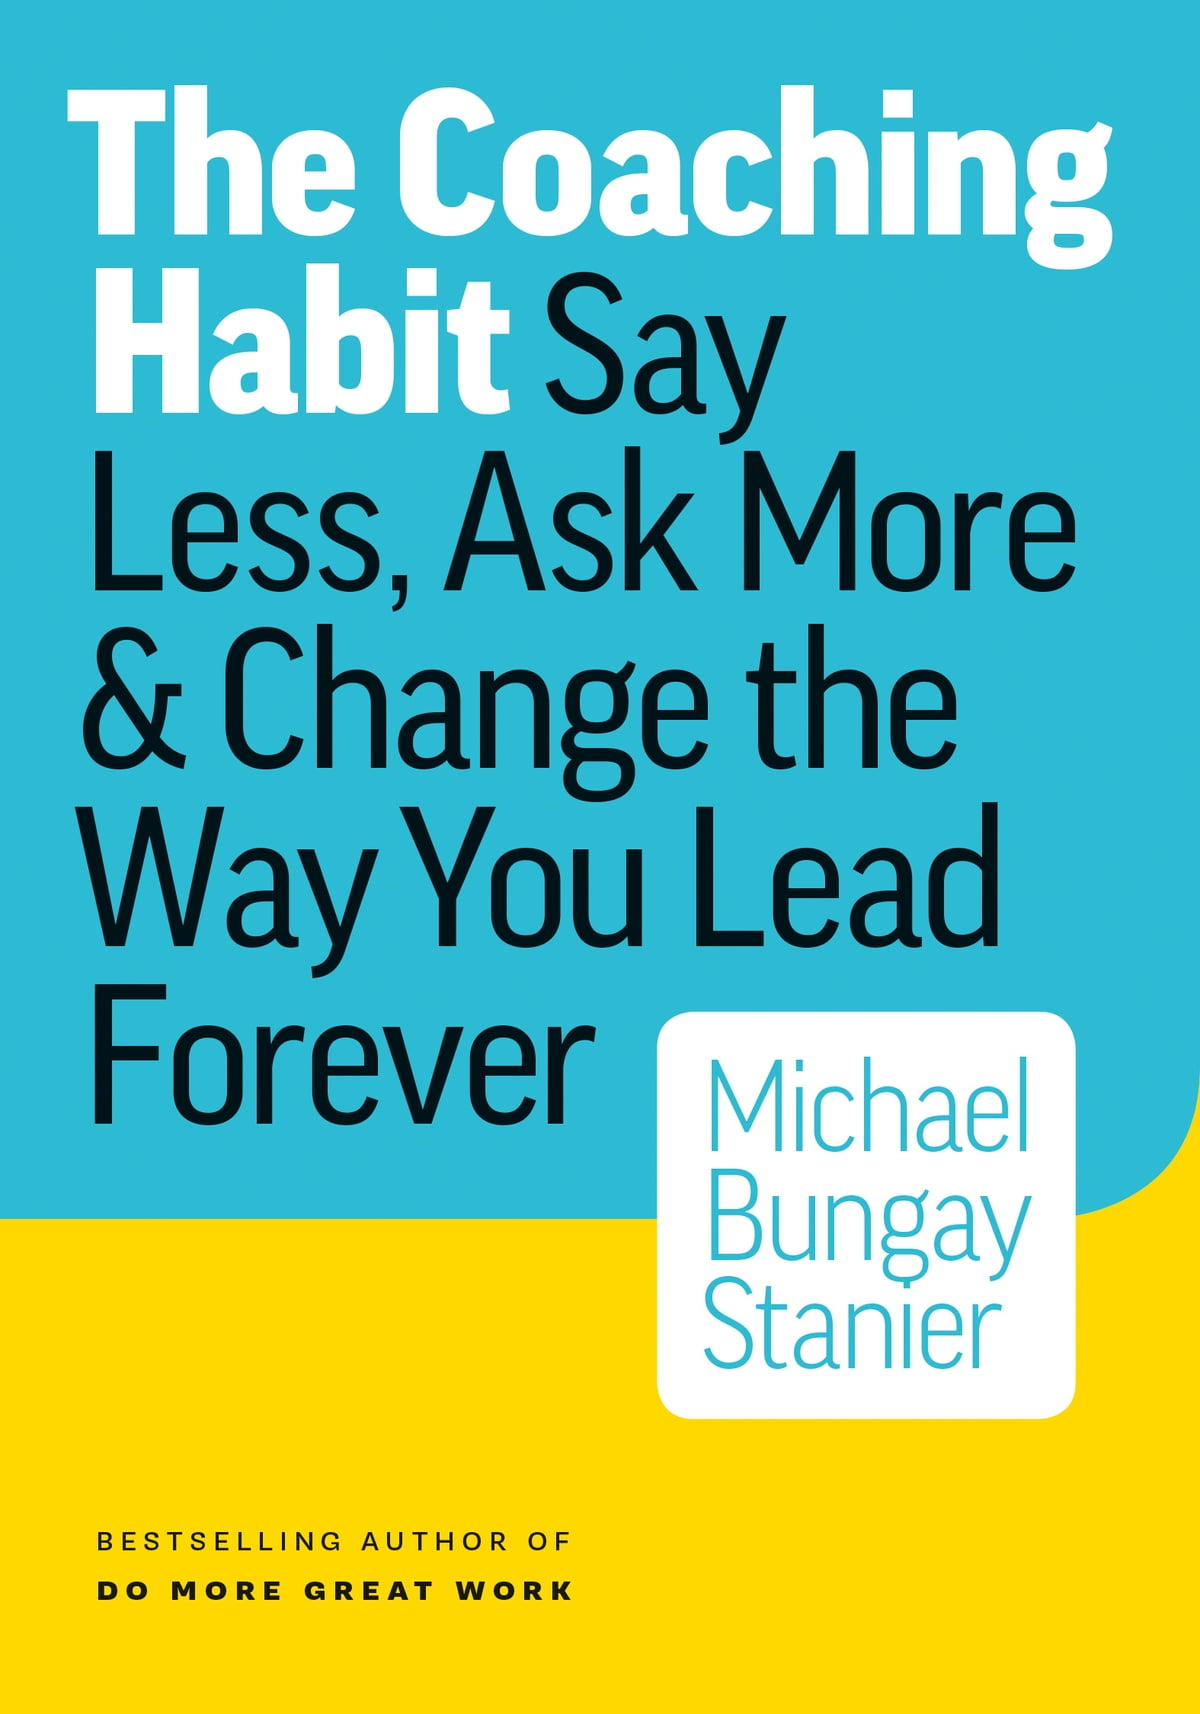 The Coaching Habit  Say Less, Ask More & Change The Way Your Lead Forever